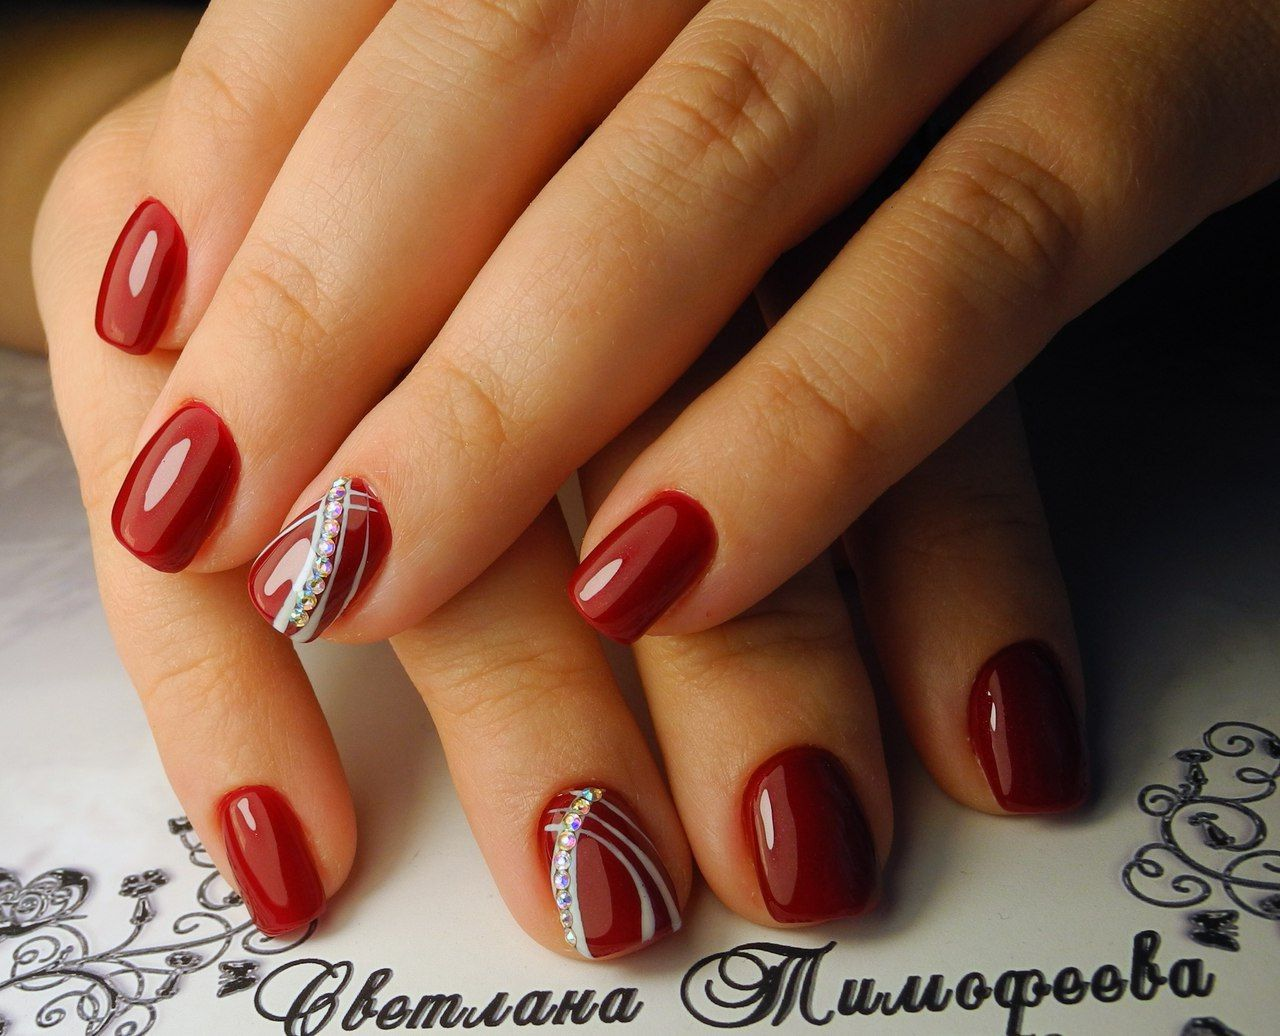 Pin by Faith on Nails | Pinterest